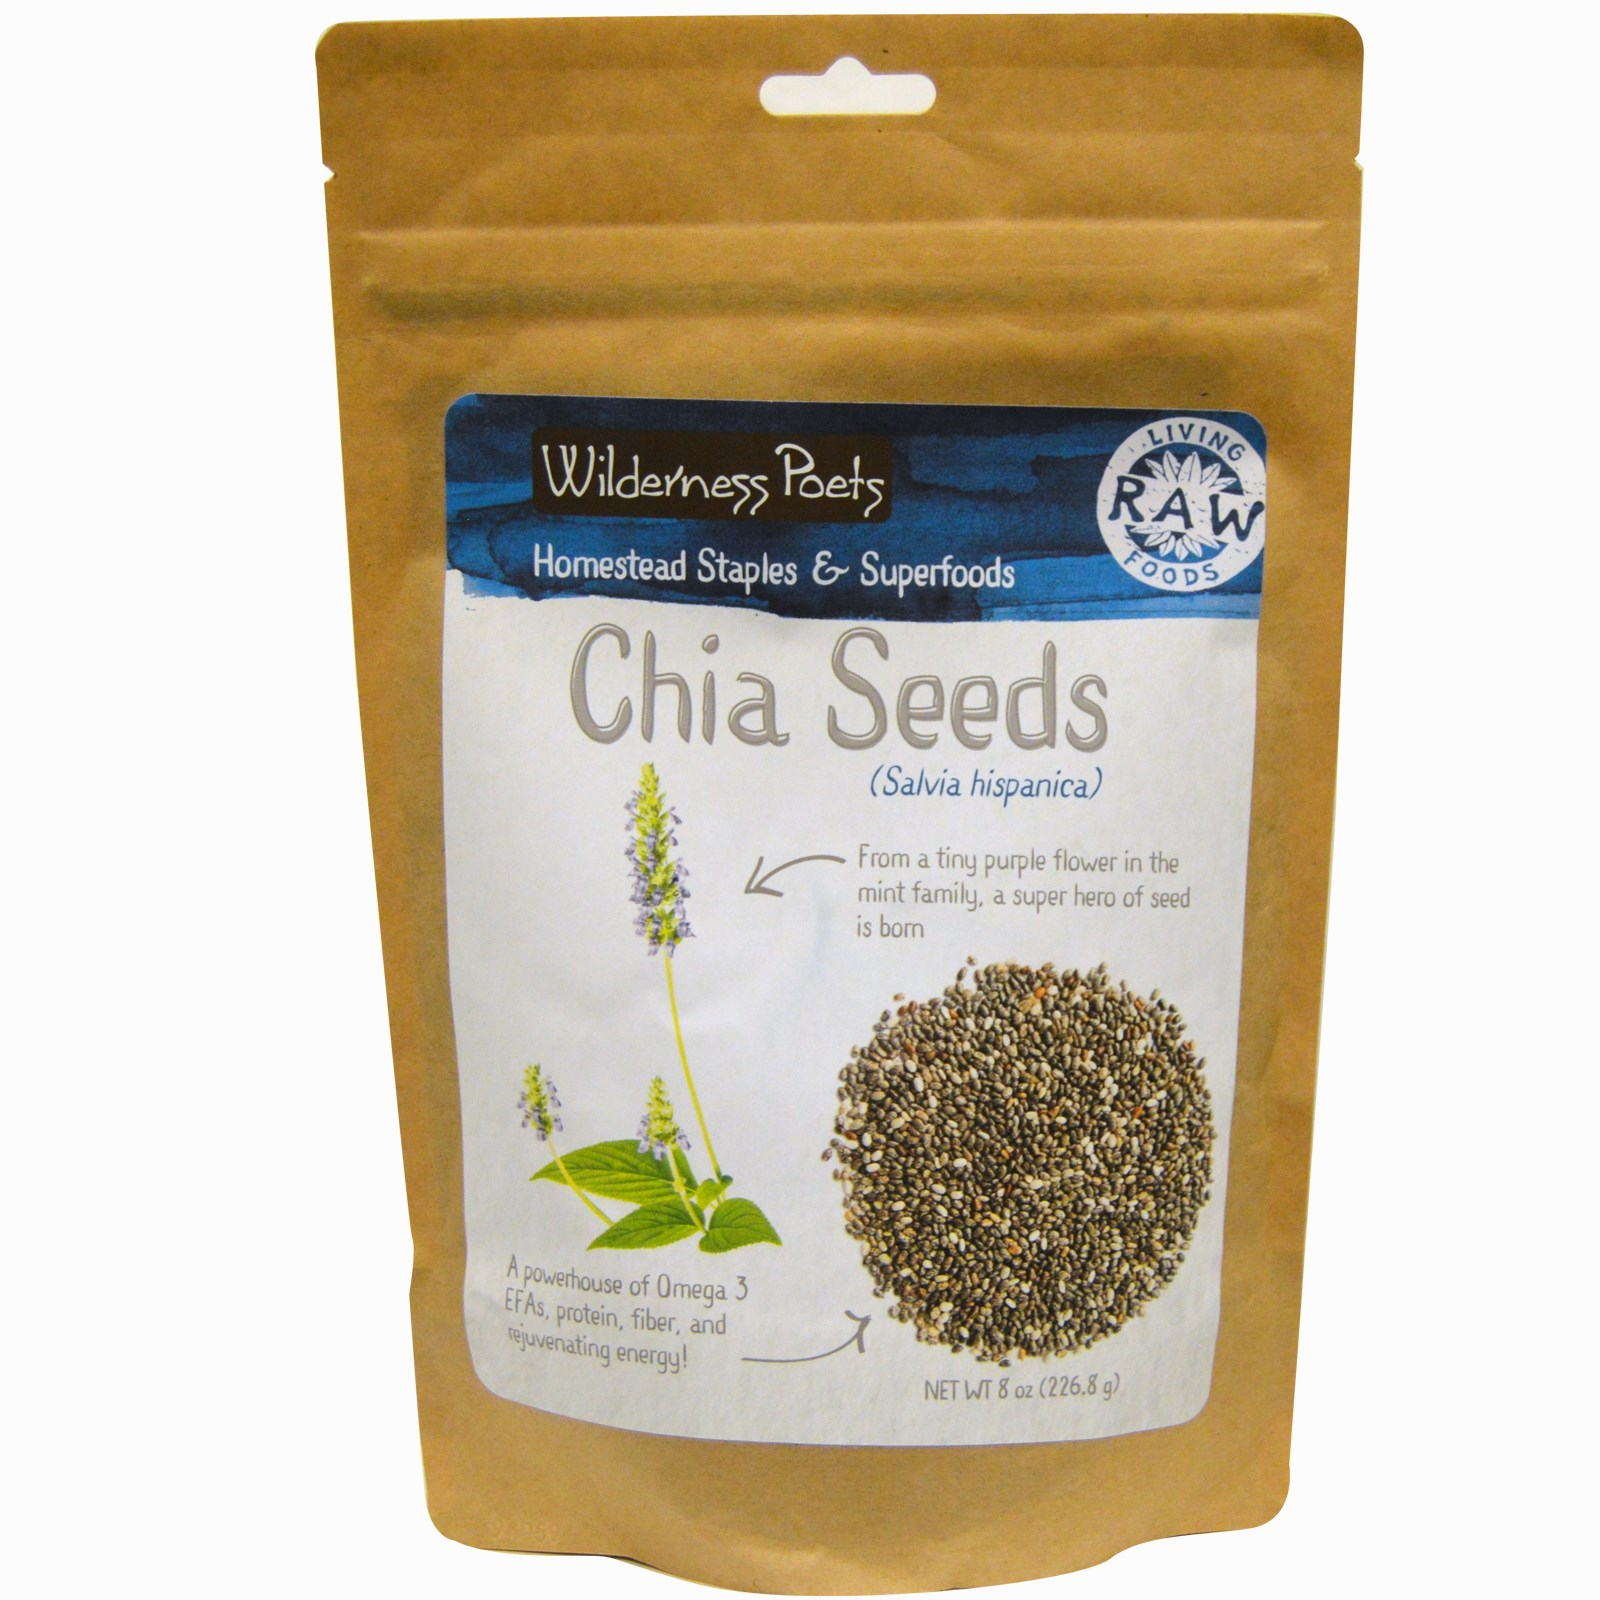 Wilderness Poets White Chia Seeds